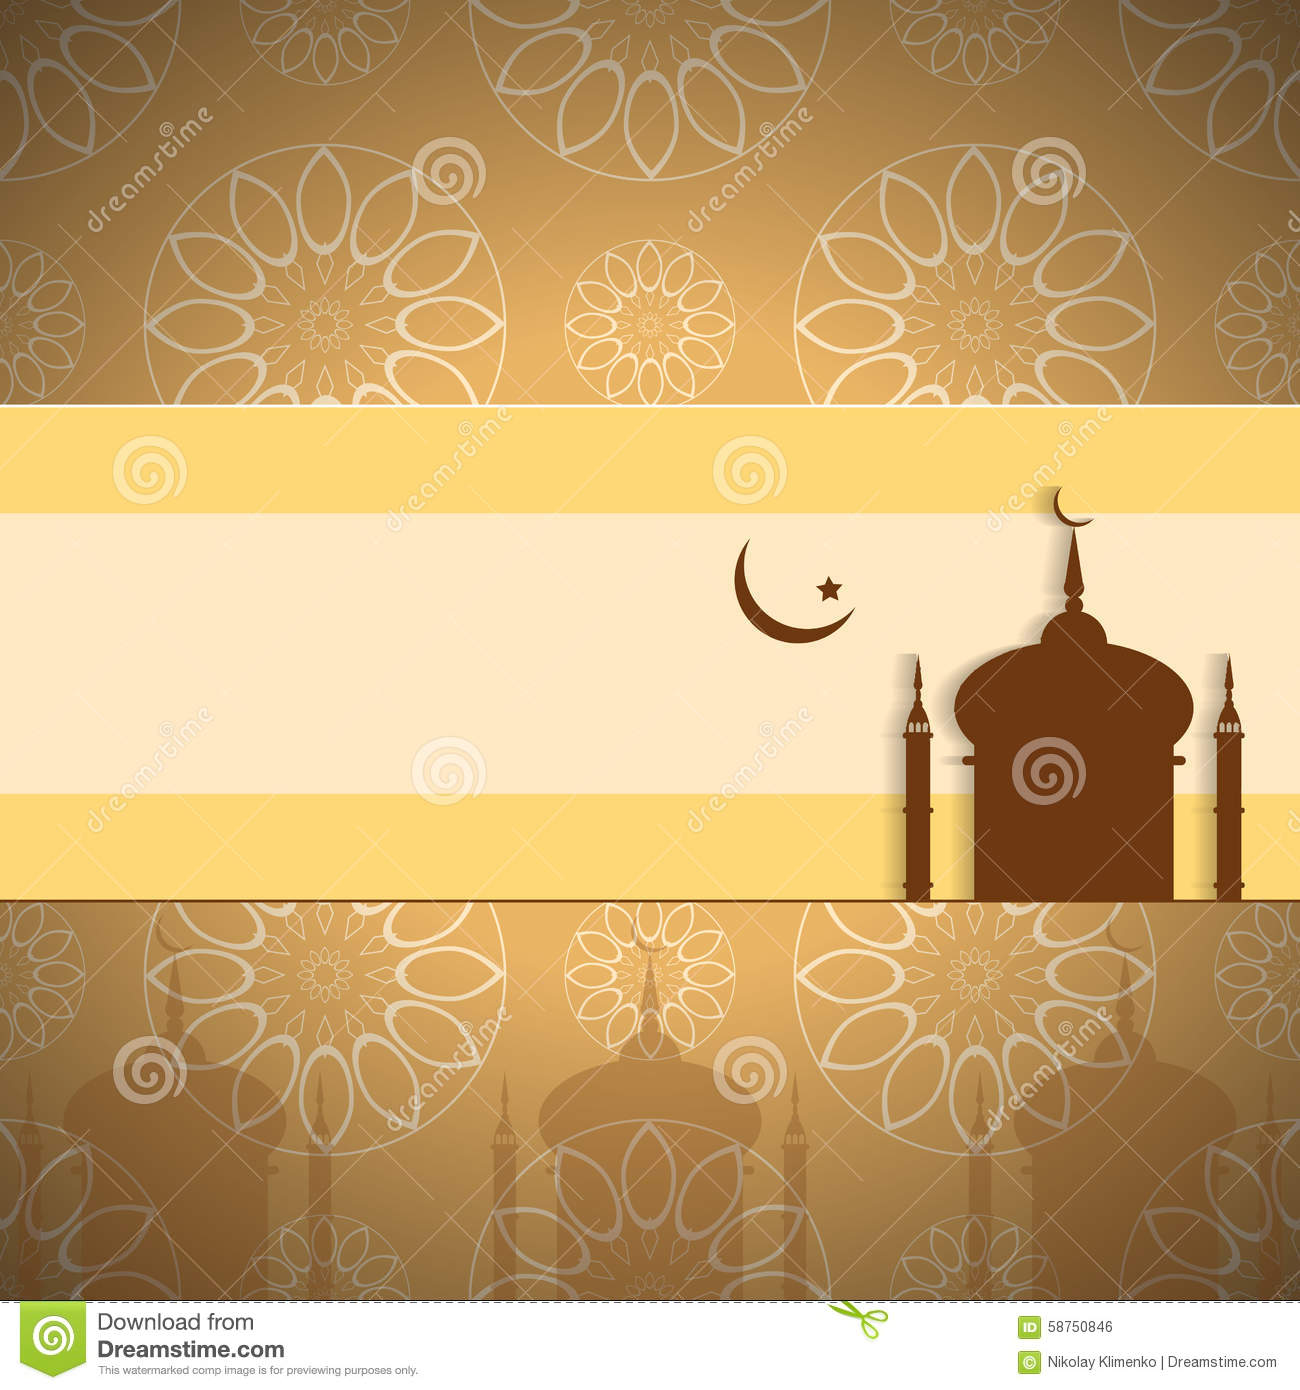 Arabic Islamic Floral Design Decorated Yellow Background